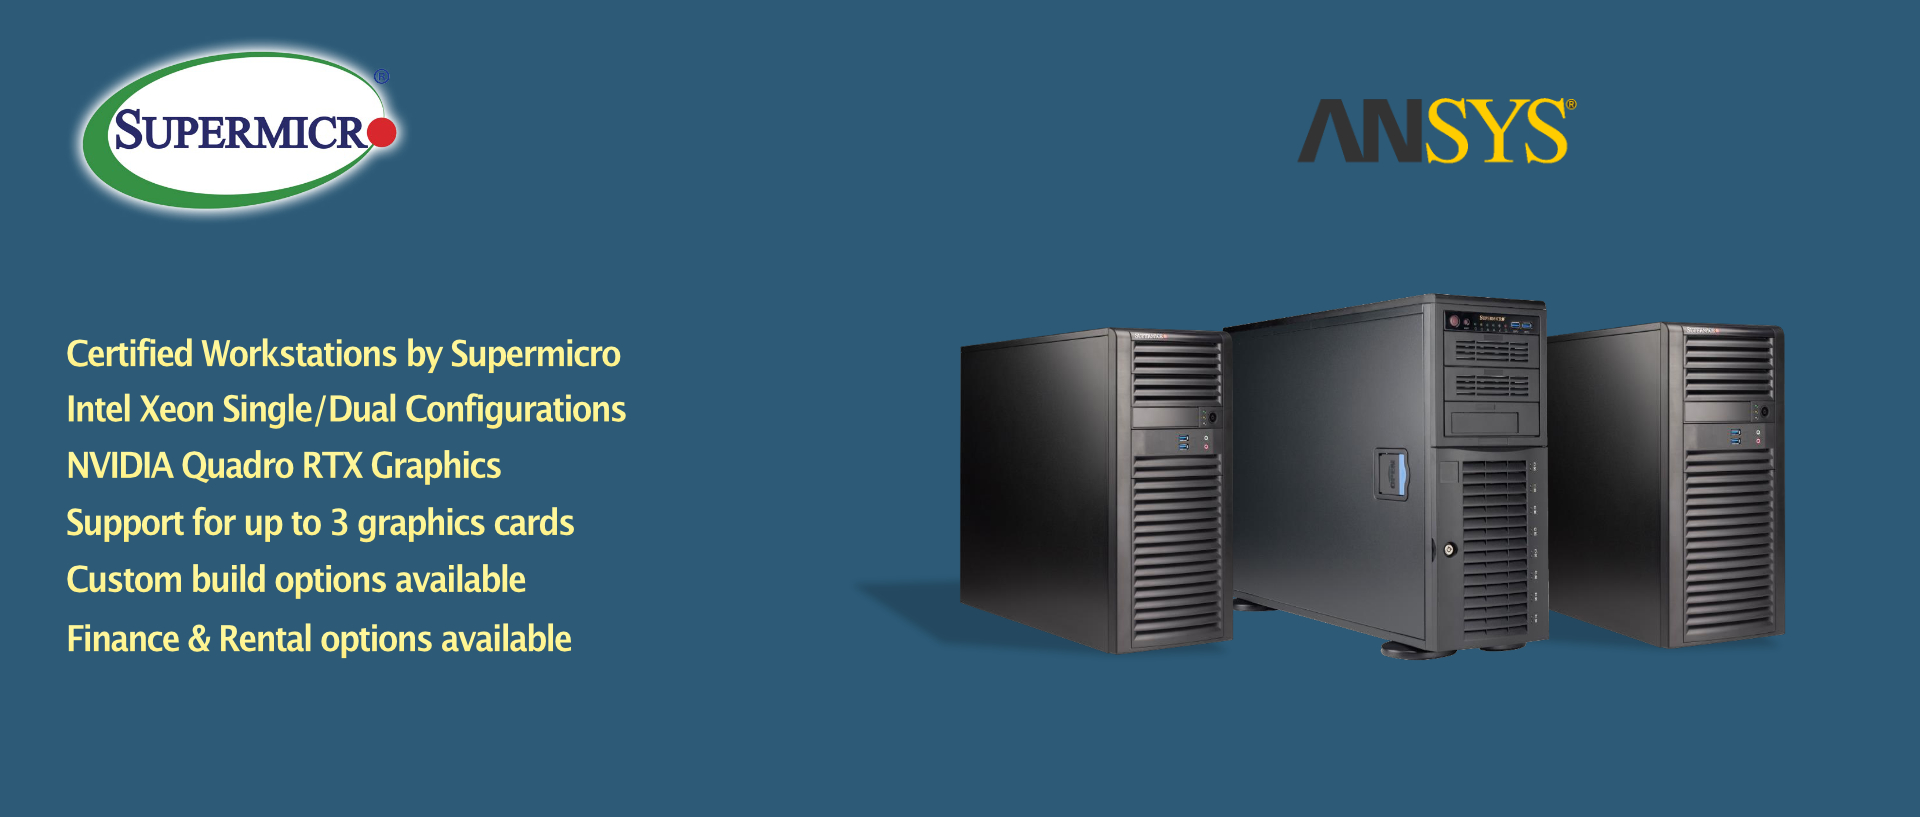 ANSYS Workstations2